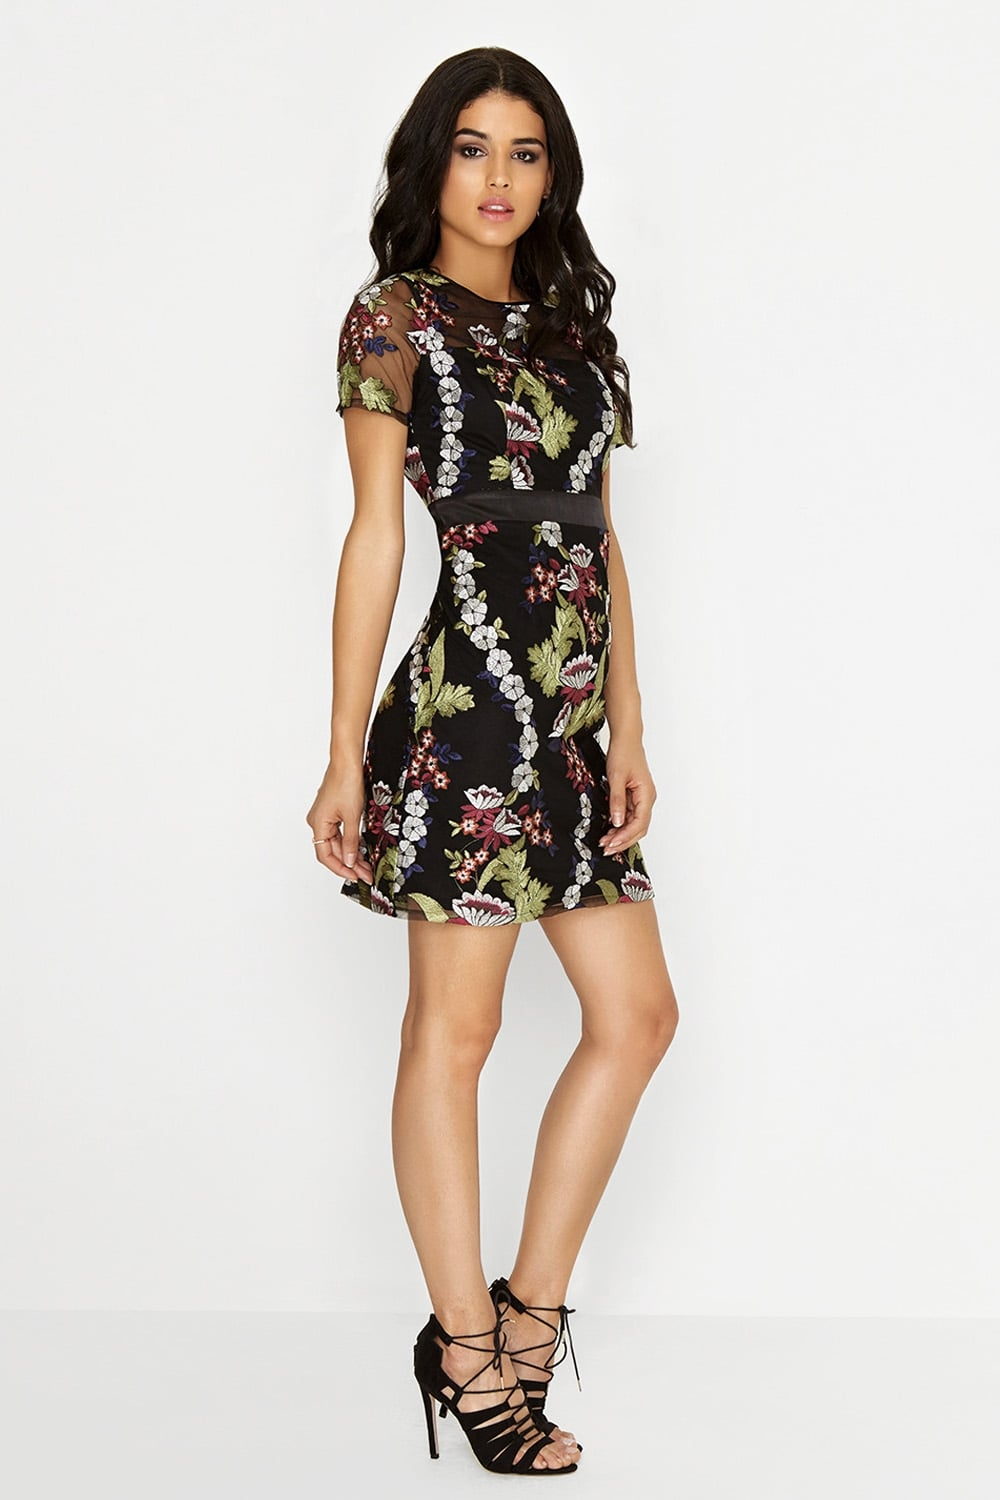 4c53cc85362 Outlet Girls On Film Embroidered Mini Dress - Outlet Girls On Film ...